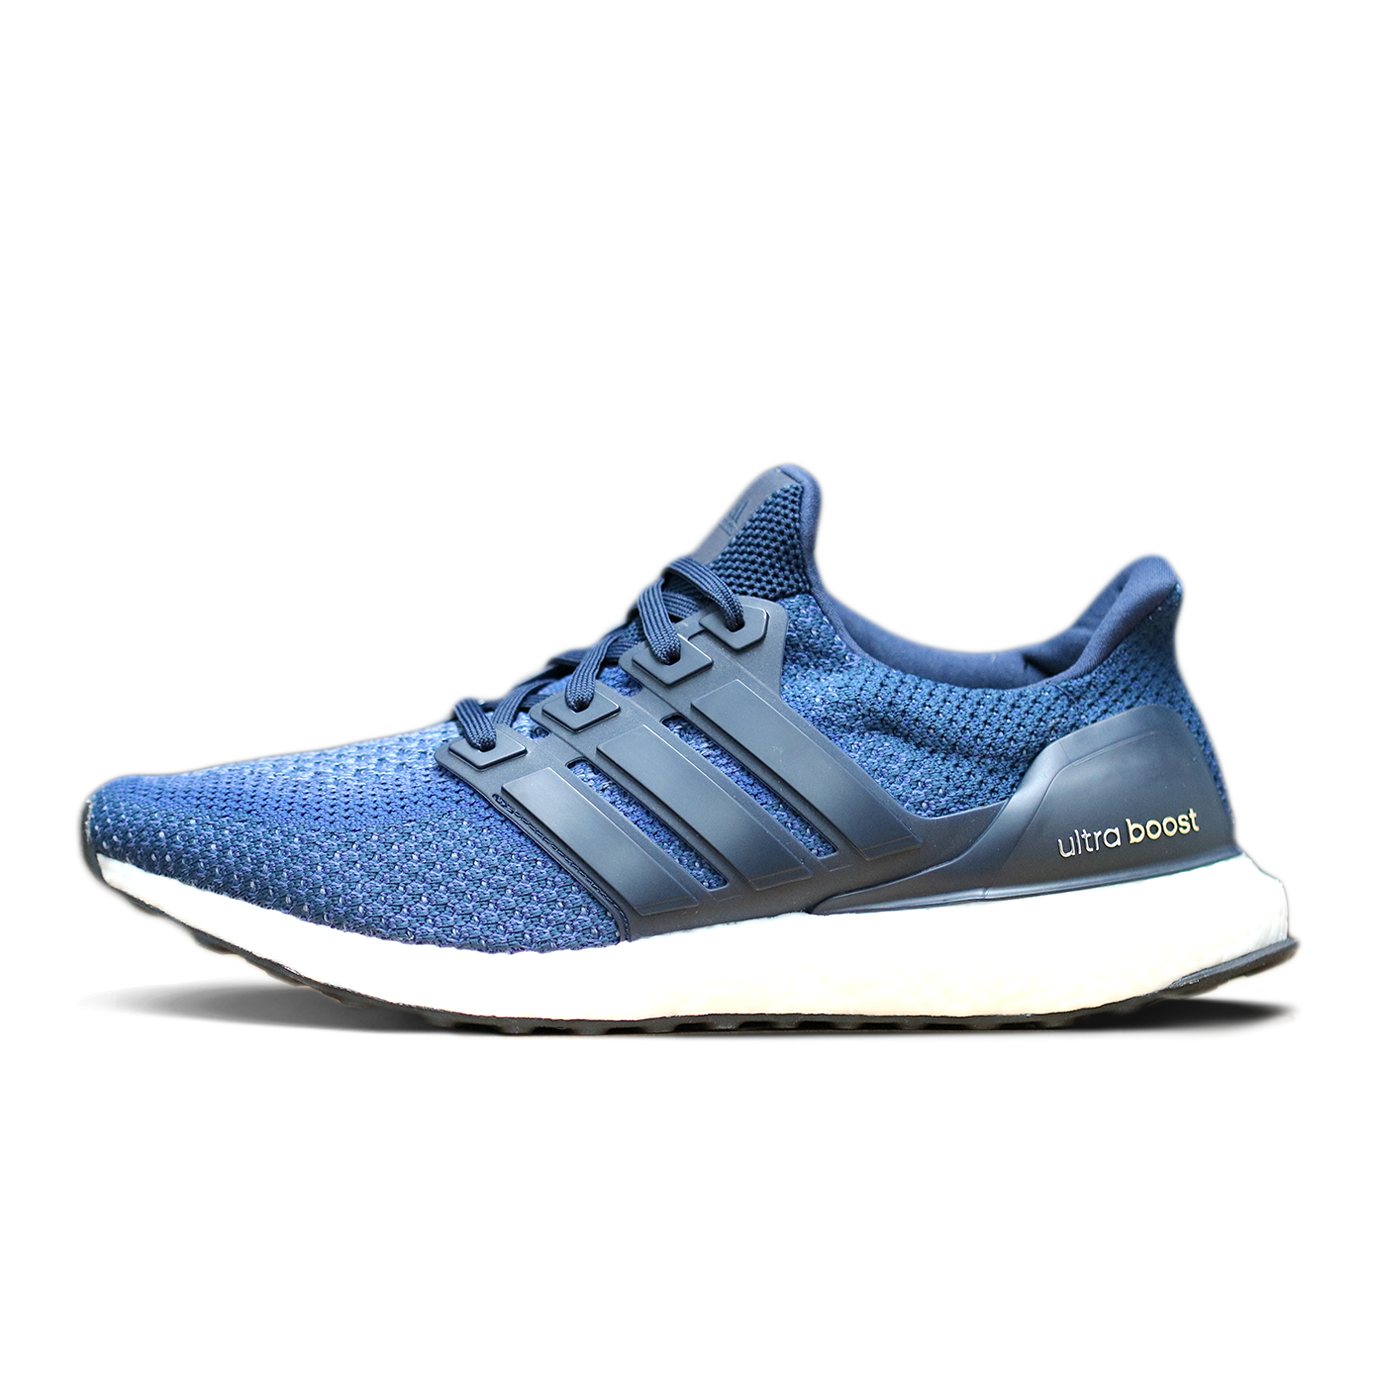 huge discount a281e 312b3 ADIDAS ULTRABOOST - NAVY GOLD Tenis Adidas, Adidas Men, Adidas Sneakers,  Mens